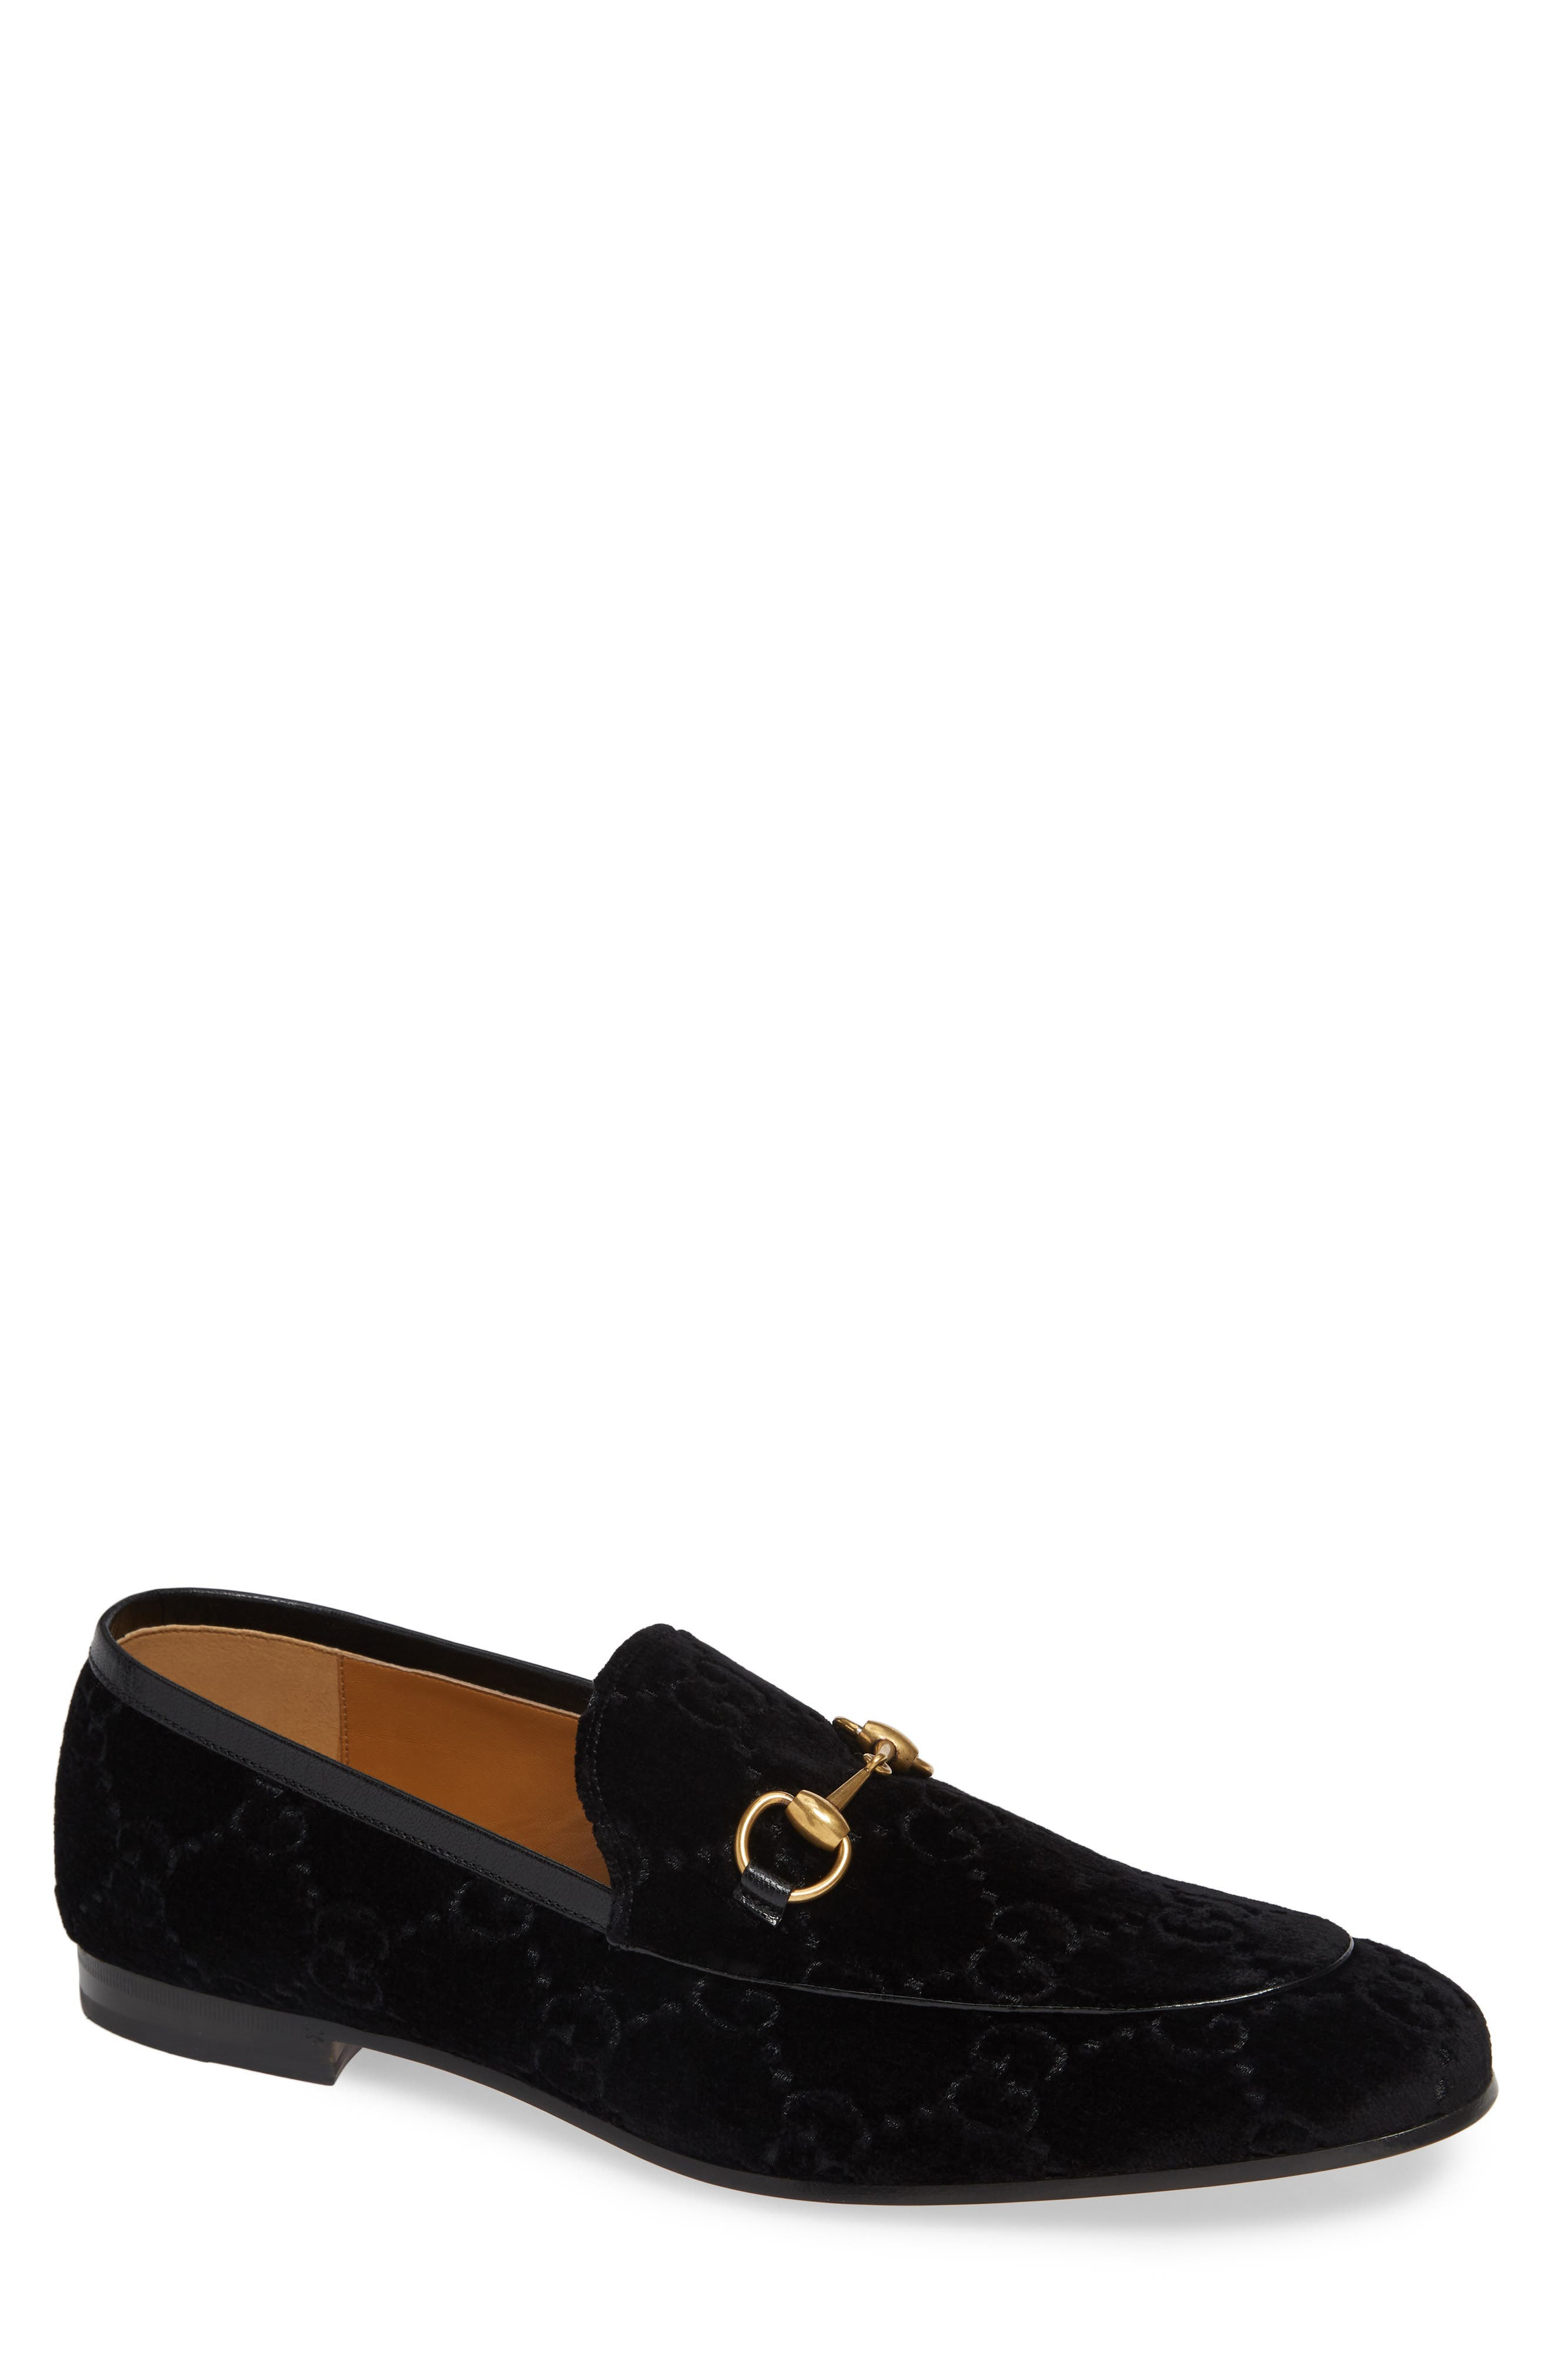 GUCCI, Jordaan GG Velvet Loafer, Main thumbnail 1, color, NERO/ NERO